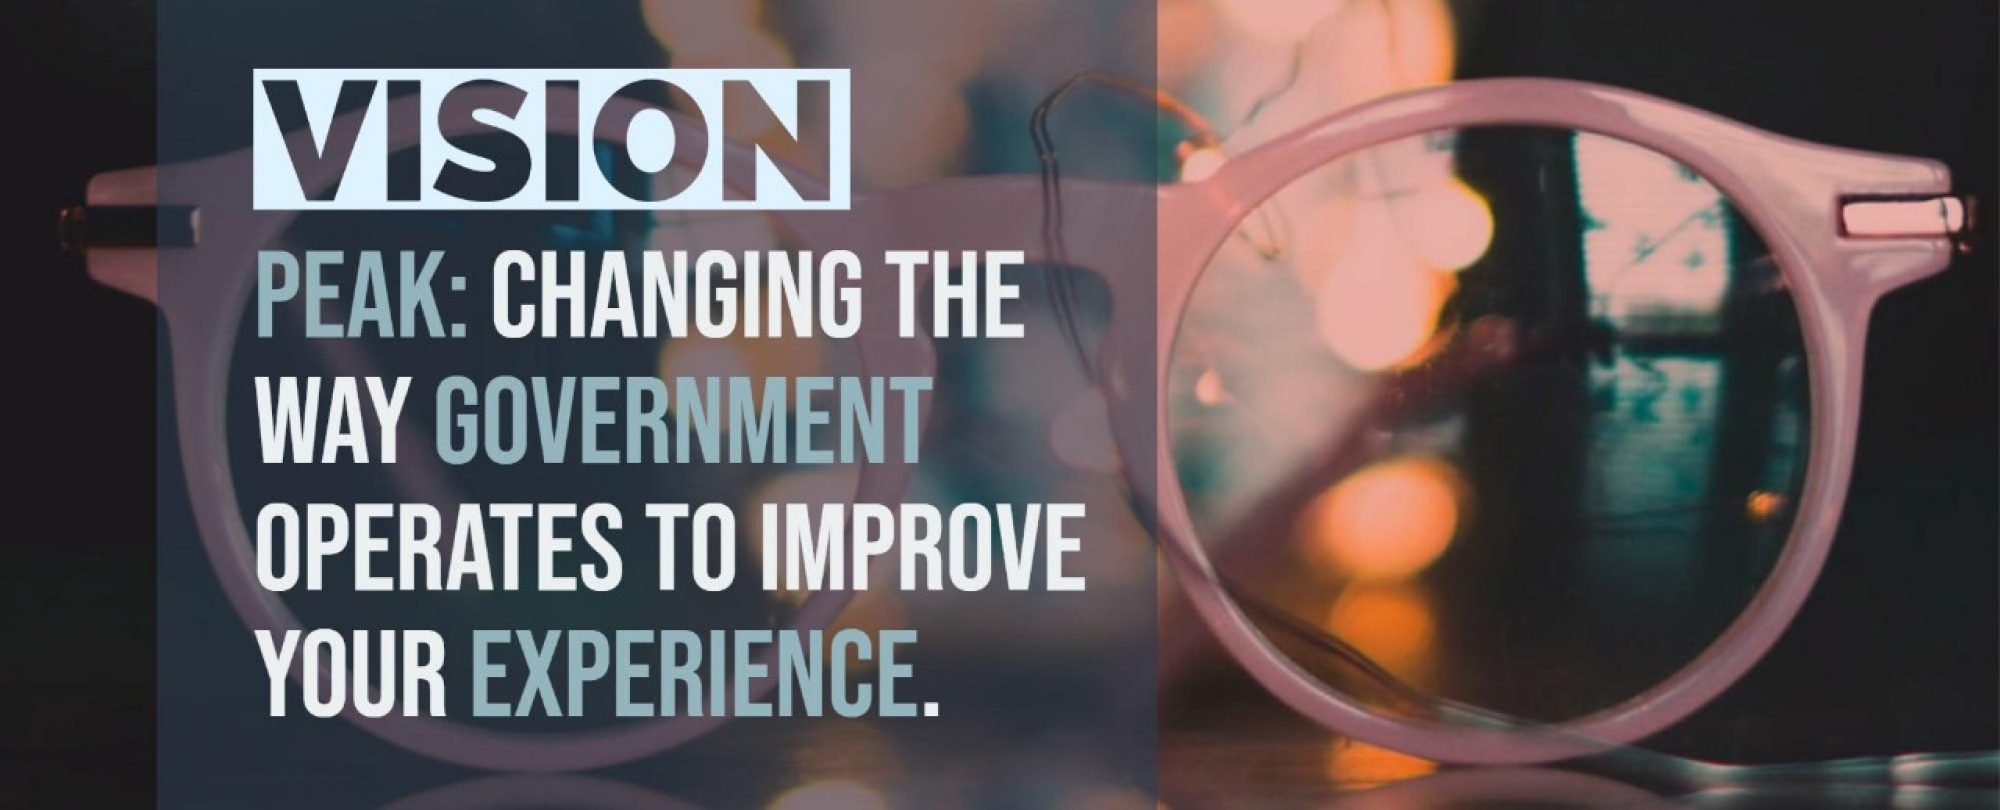 Vision: Peak – changing the way government operates to improve your experience.